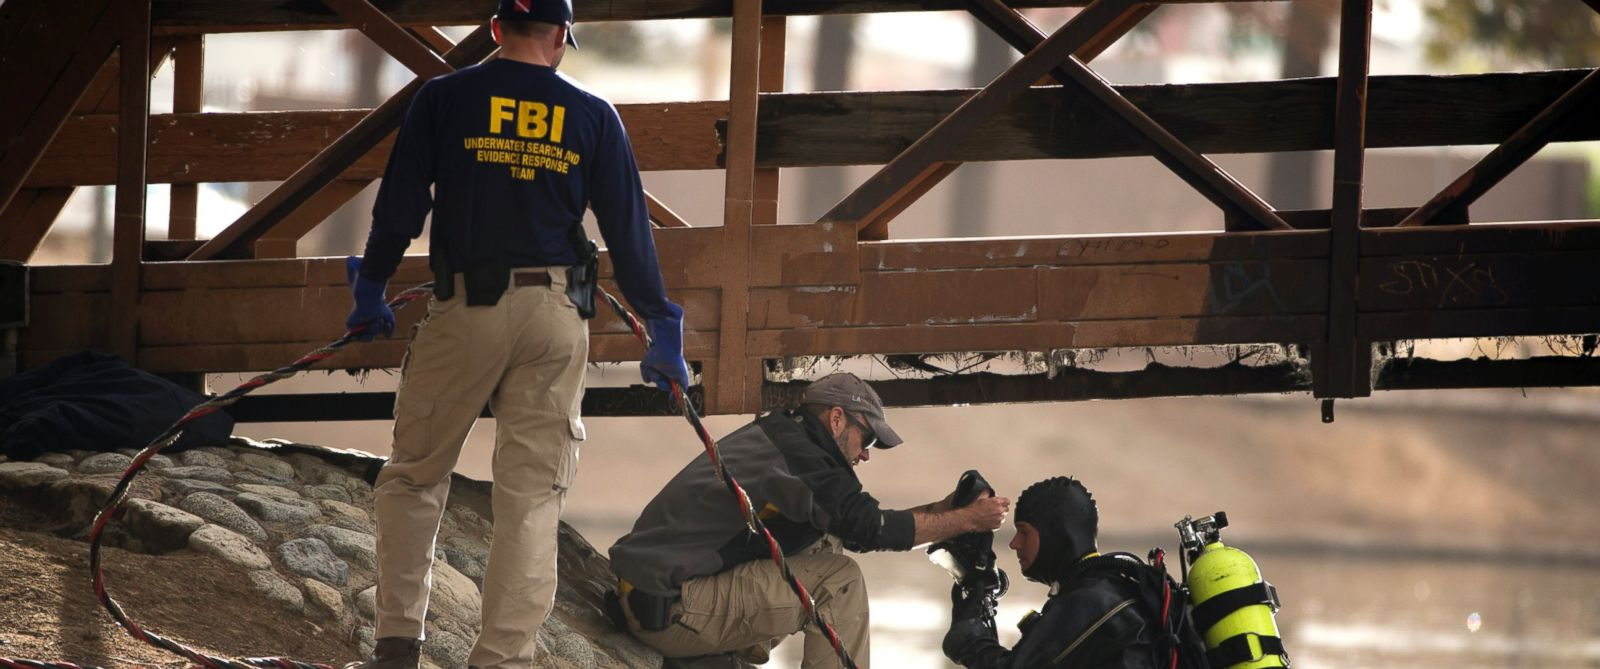 PHOTO: An FBI dive team prepares to search Seccombe Lake for evidence in connection with last weeks fatal shooting at Inland Regional Center , Friday, Dec. 11, 2015, in San Bernardino, Calif.